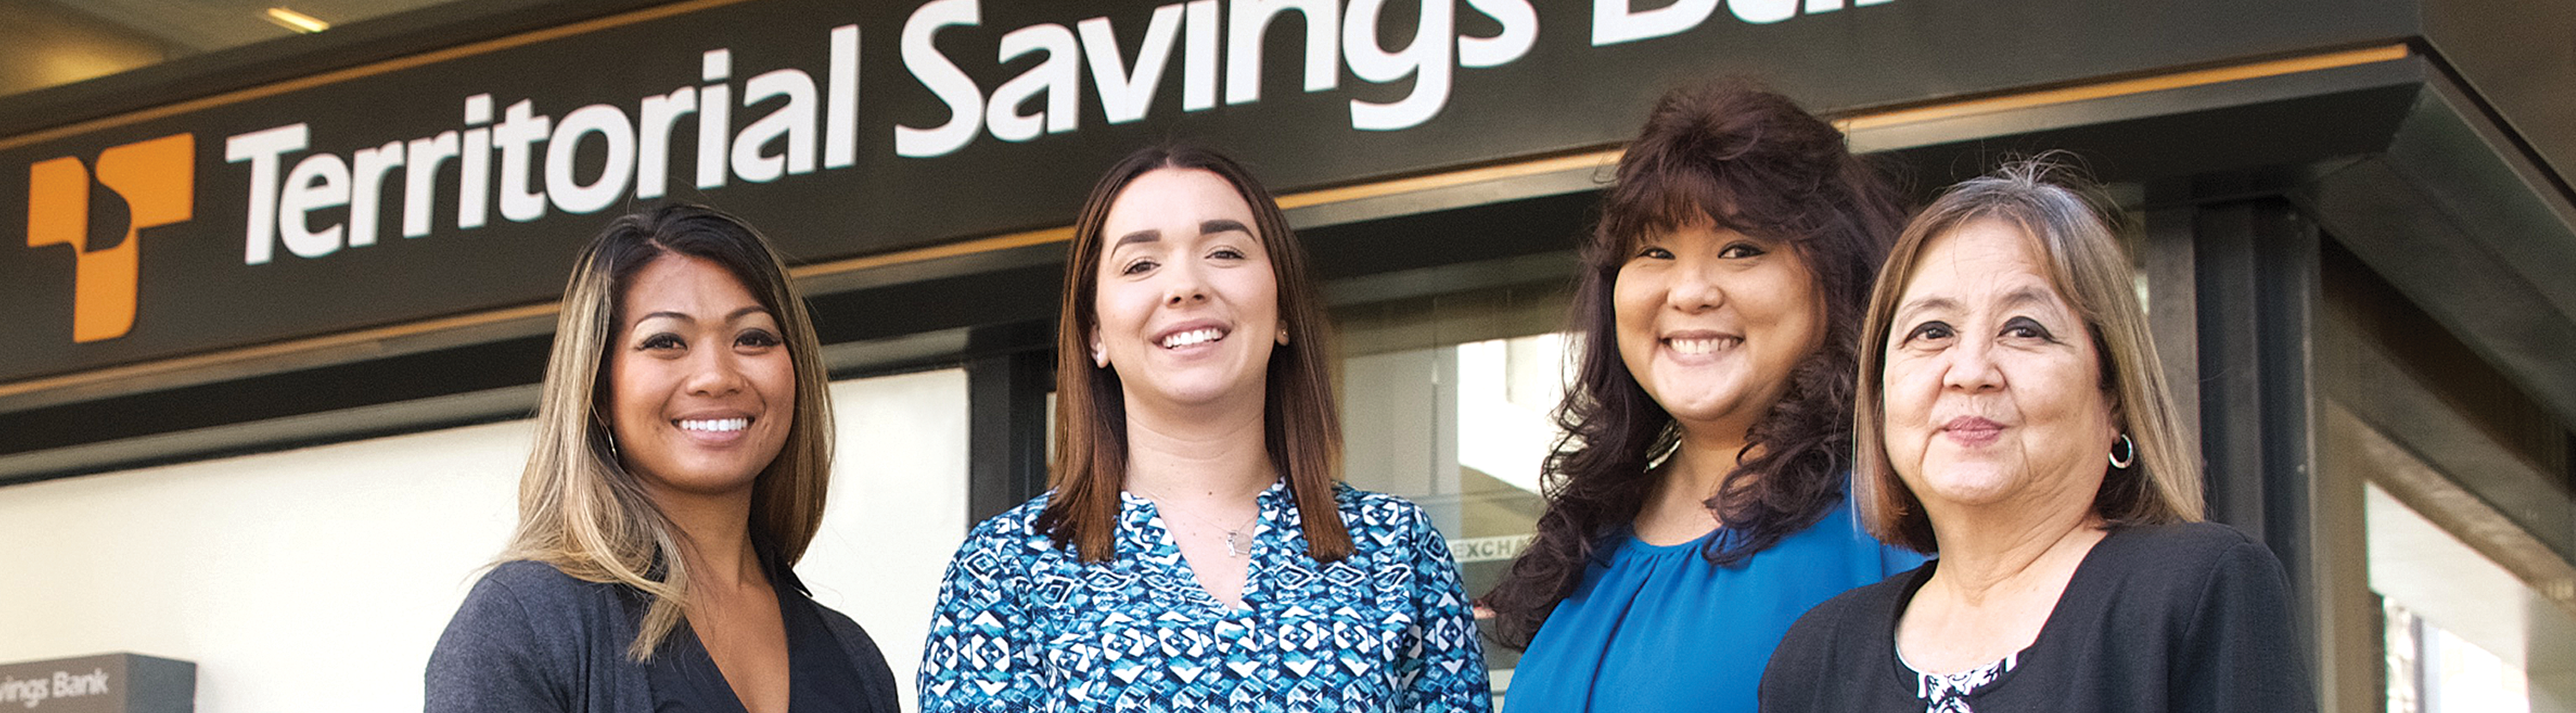 Territorial Savings Bank Staff